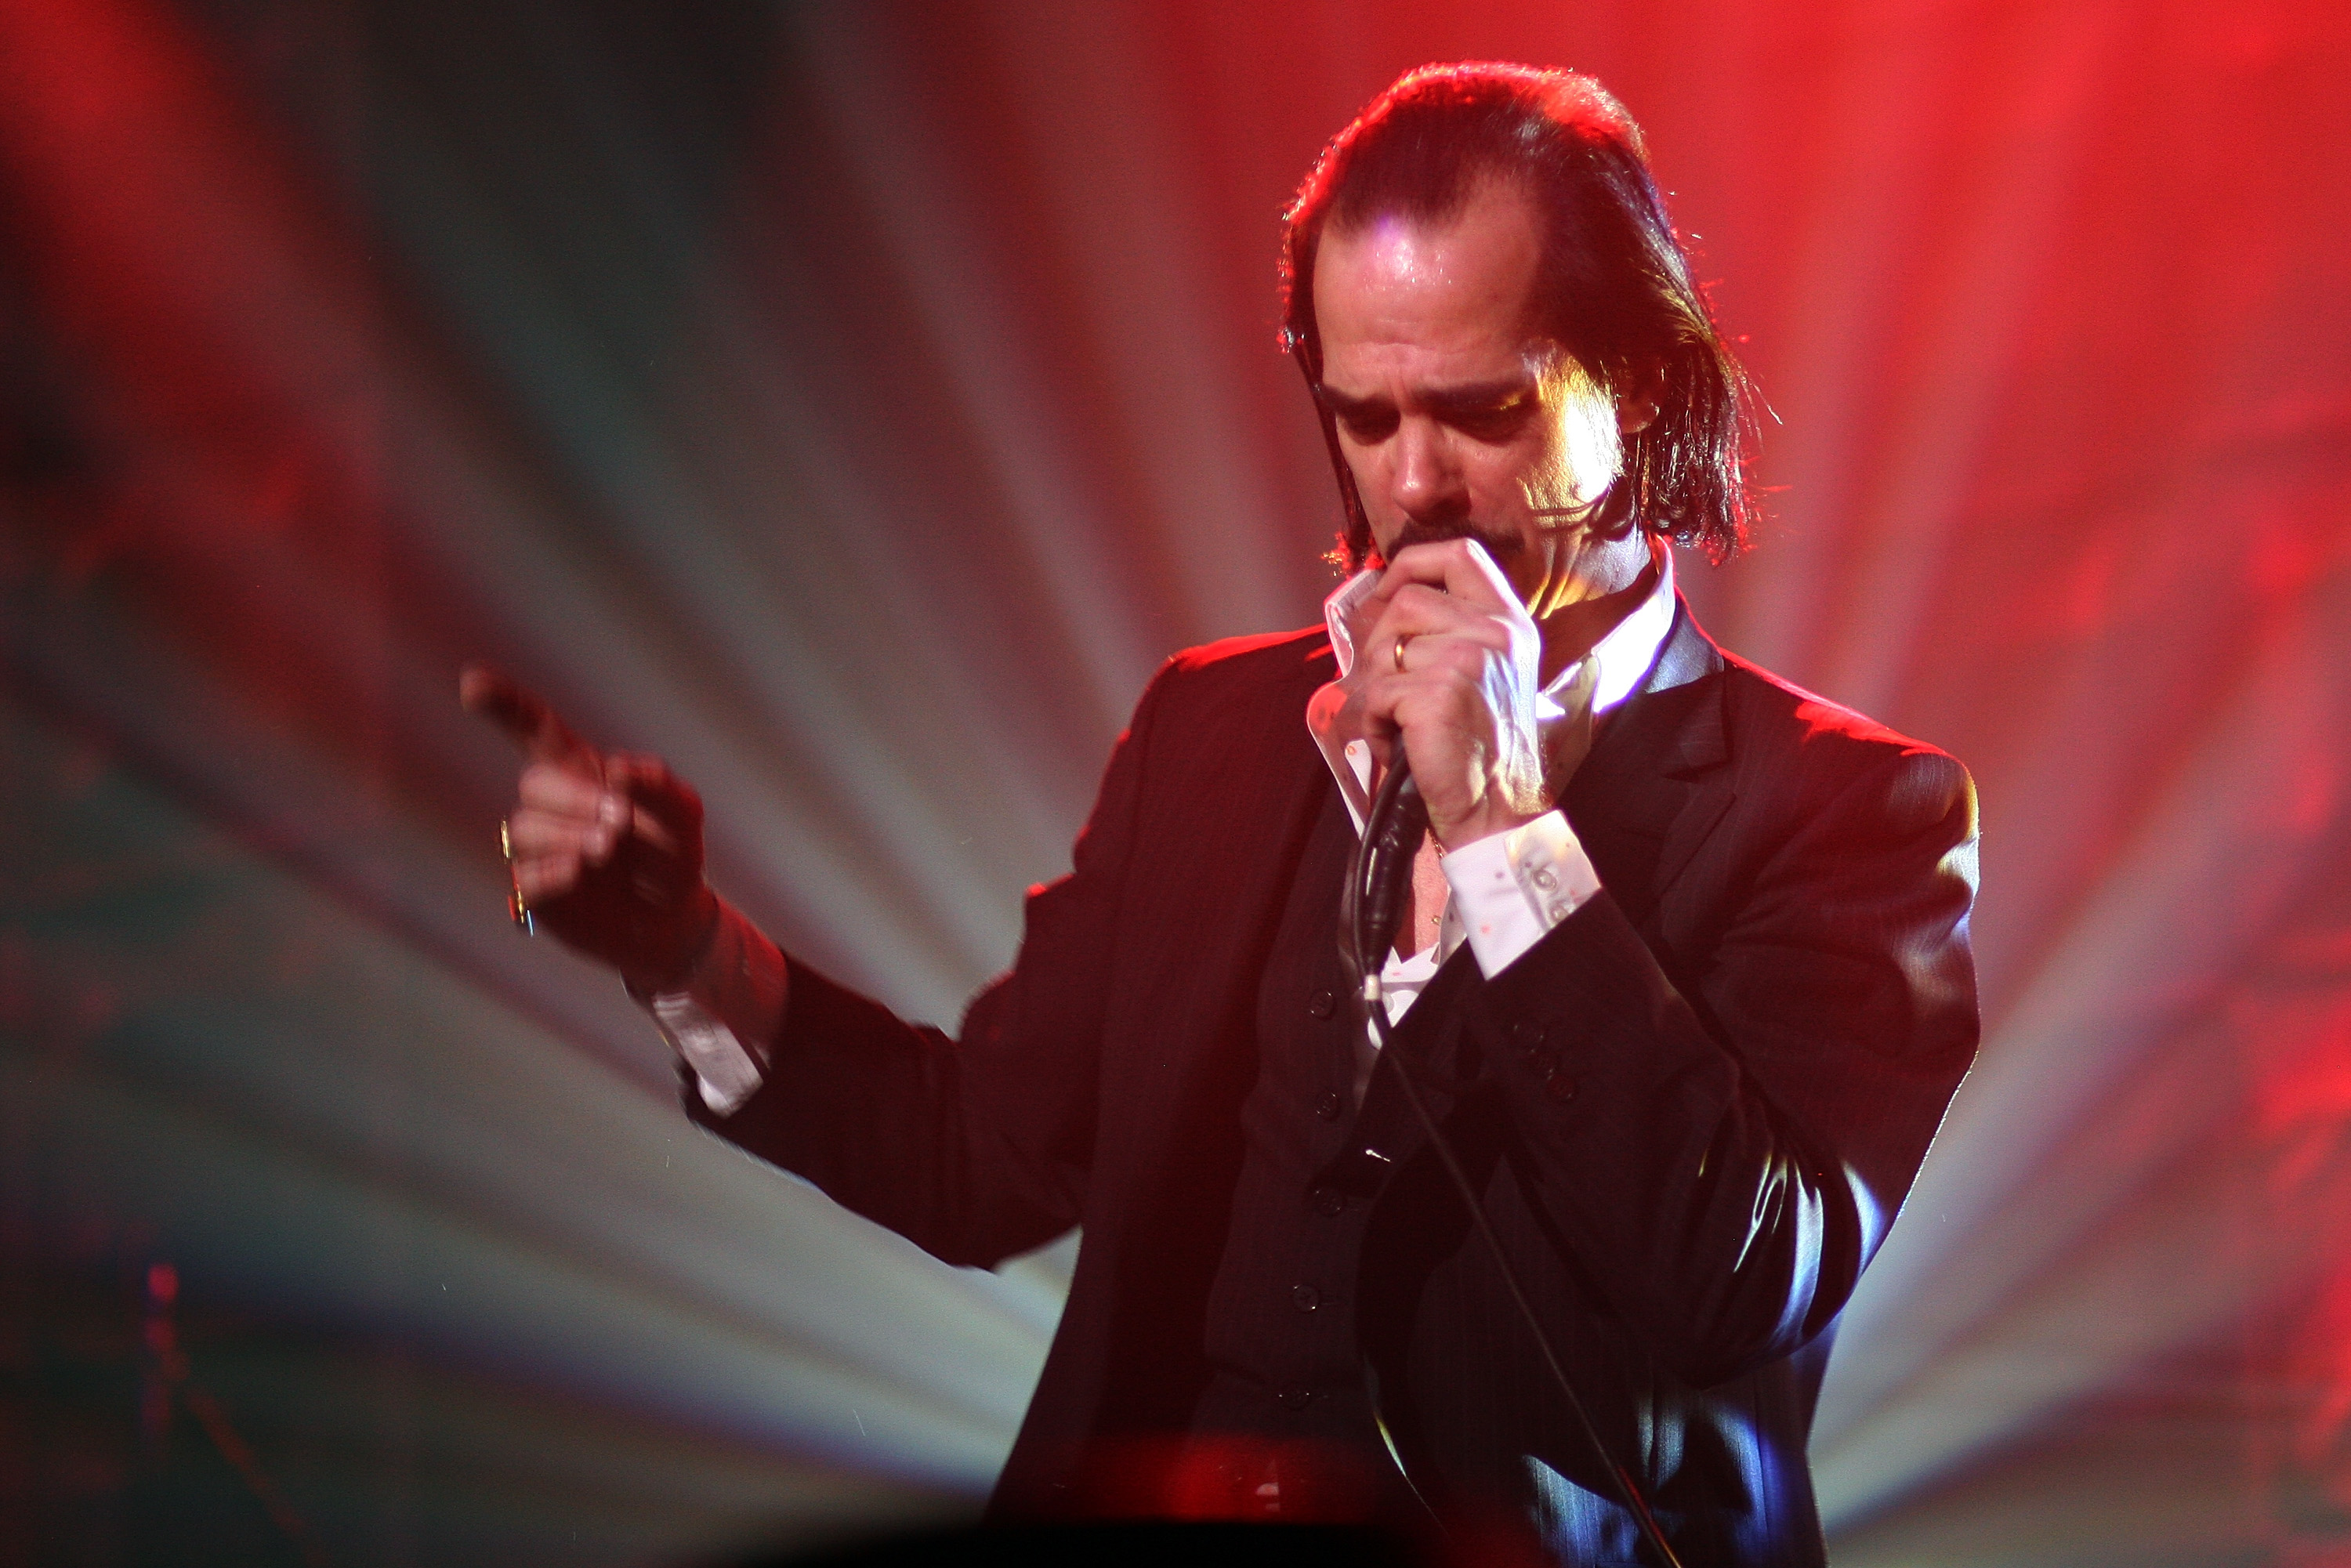 NEW YORK - MARCH 06: Musician Nick Cave and the Bad Seeds perform onstage at the 2008 PLUG Independent Music Awards at Terminal 5 on March 6, 2008 in New York City. (Photo by Roger Kisby/Getty Images)